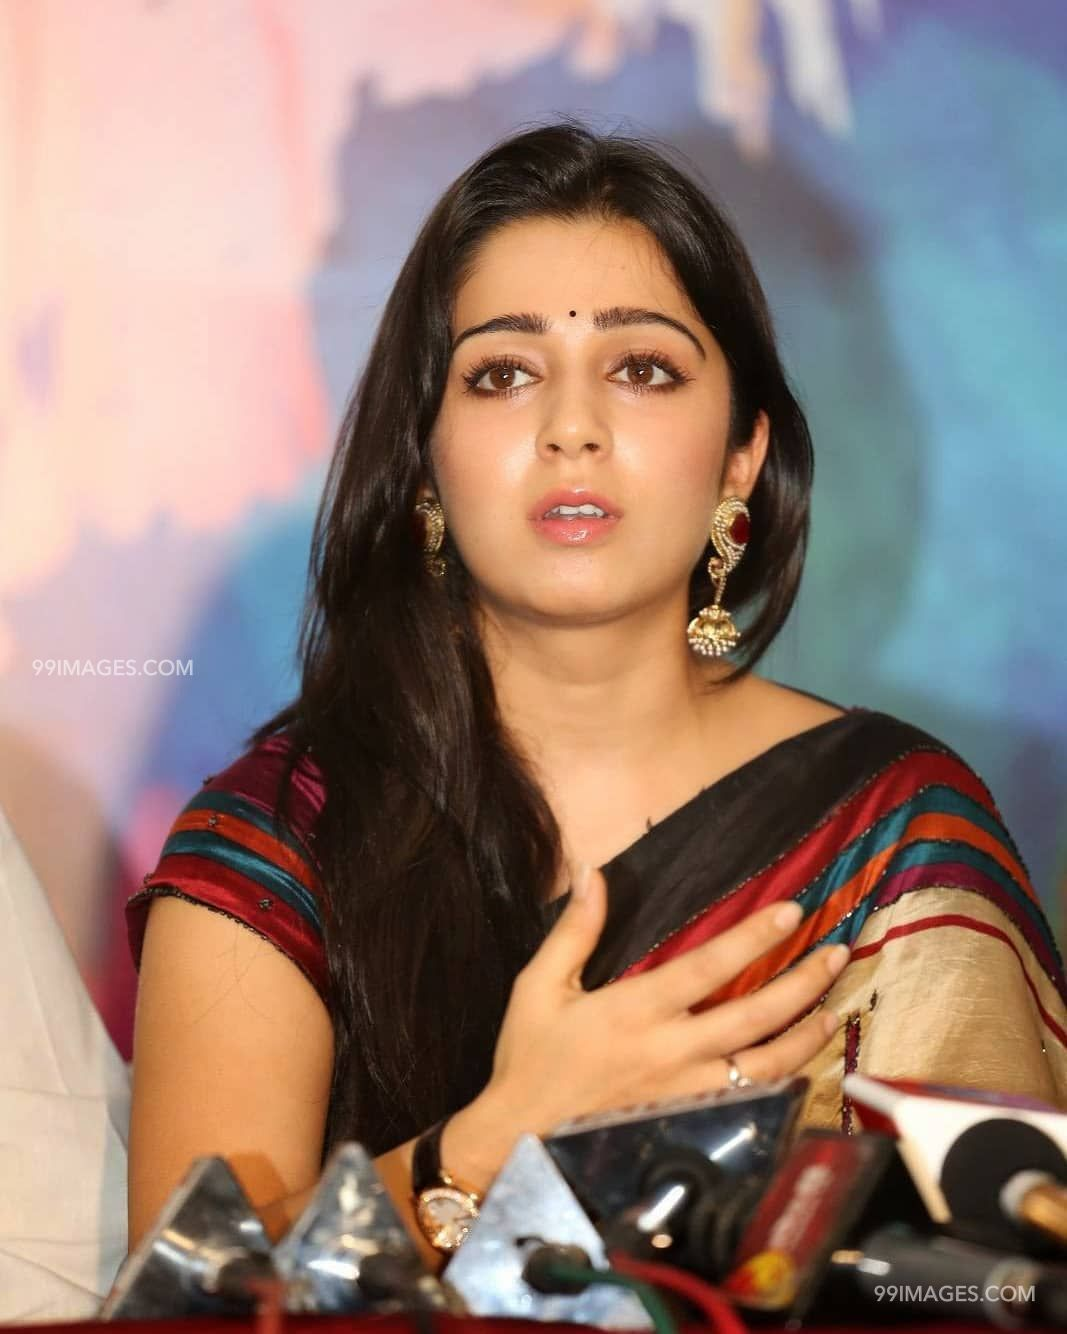 Charmy Kaur Beautiful Photos & Mobile Wallpapers HD (Android/iPhone) (1080p) (26005) - Charmy Kaur